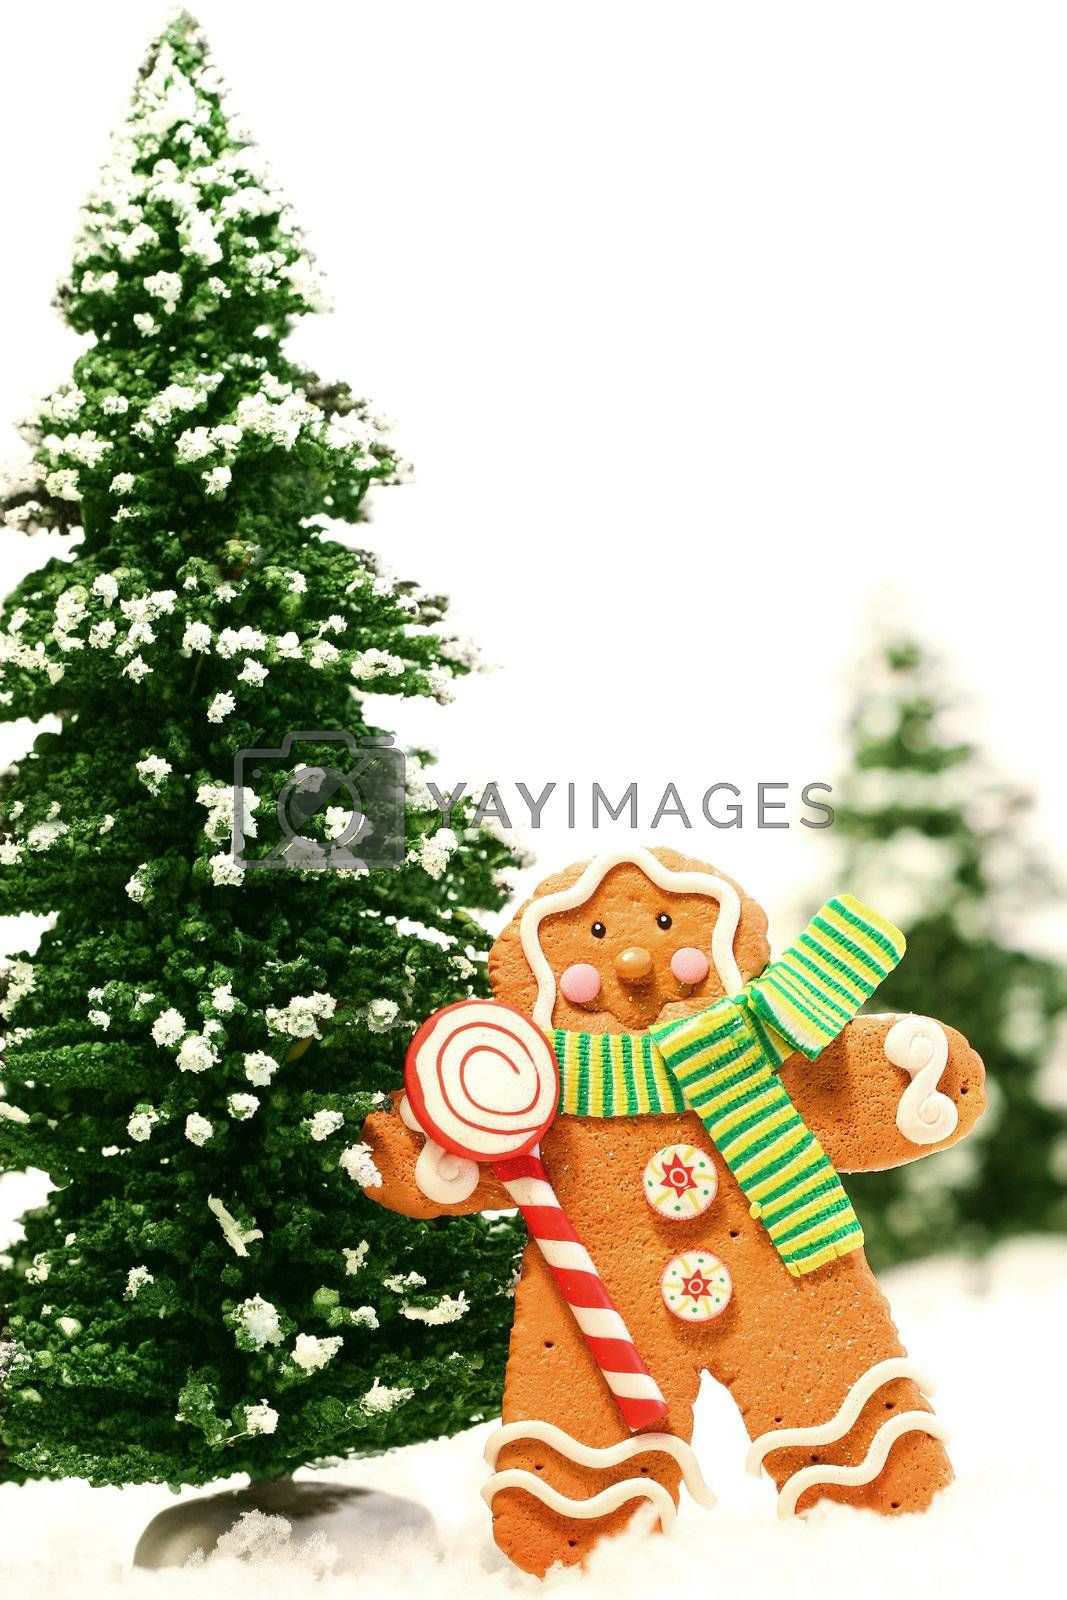 Little gingerbread man with green trees against white background